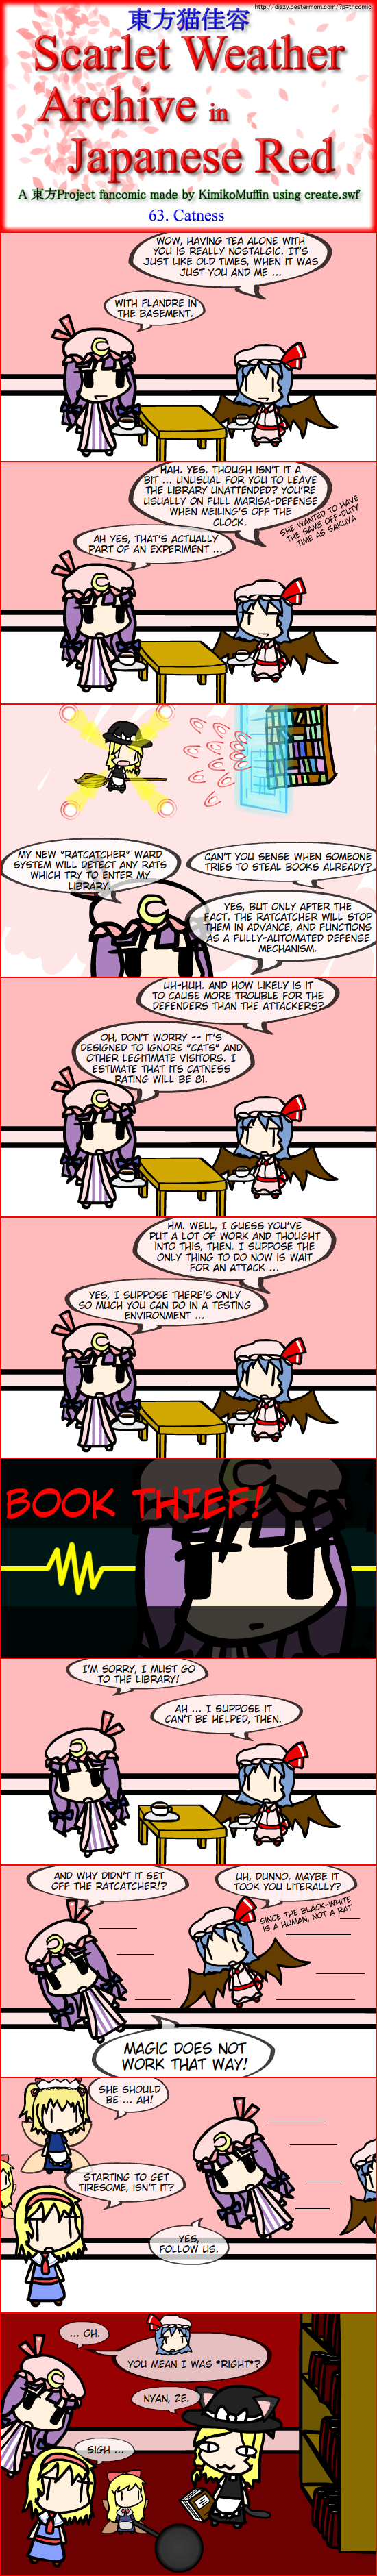 Touhou Nekokayou: Scarlet Weather Archive in Japanese Red #63